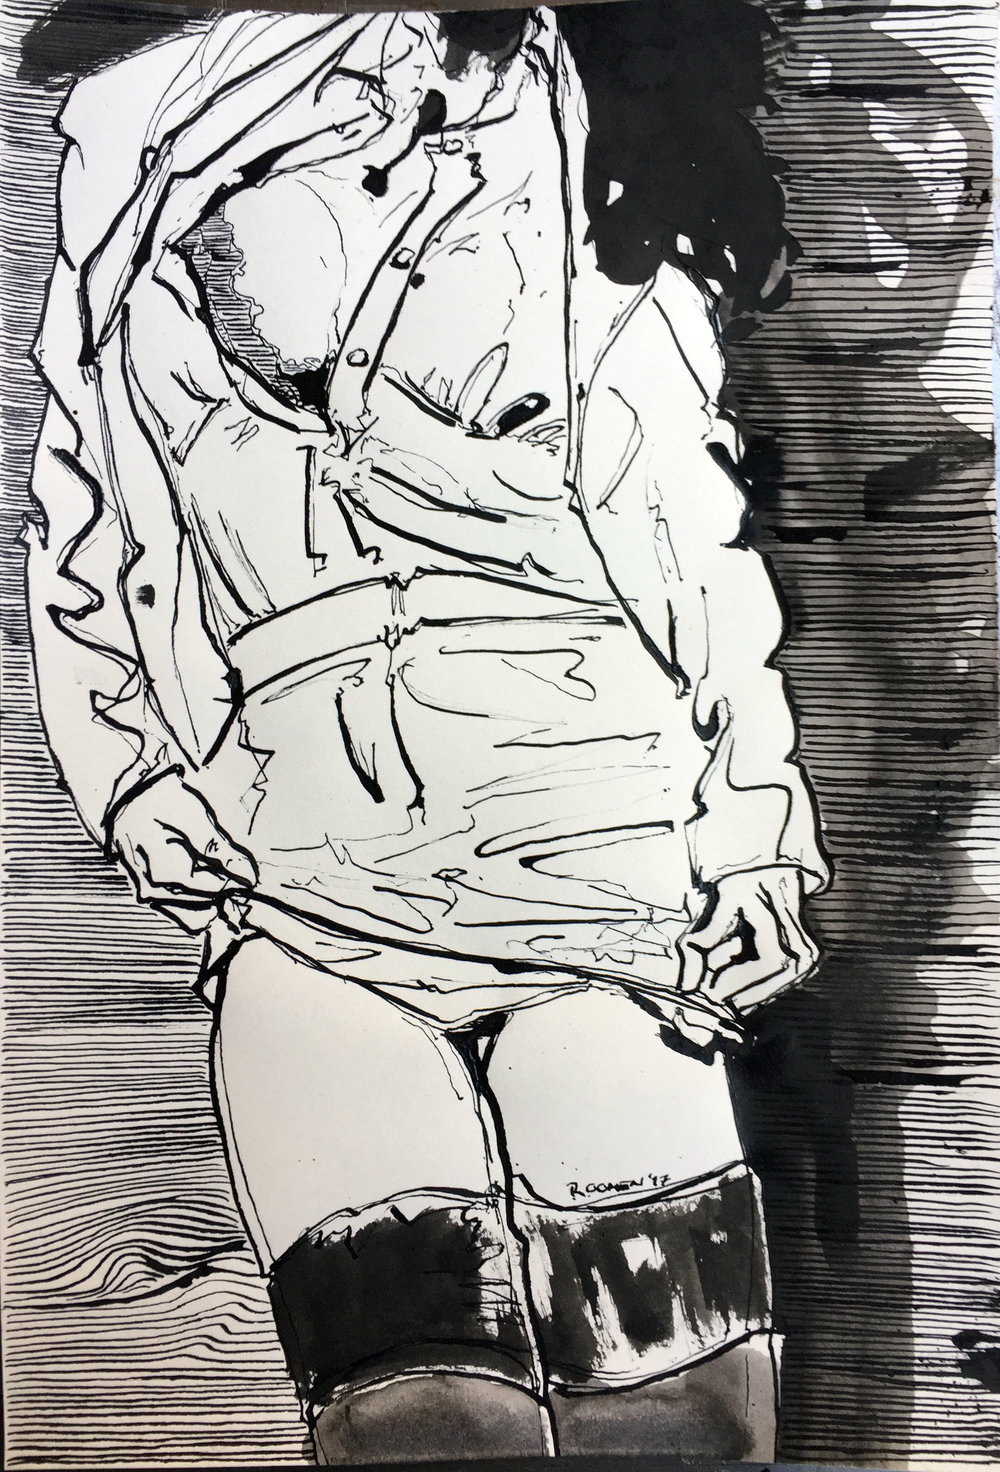 erotic model front Indian ink on paper 33x22,5 cm 2017